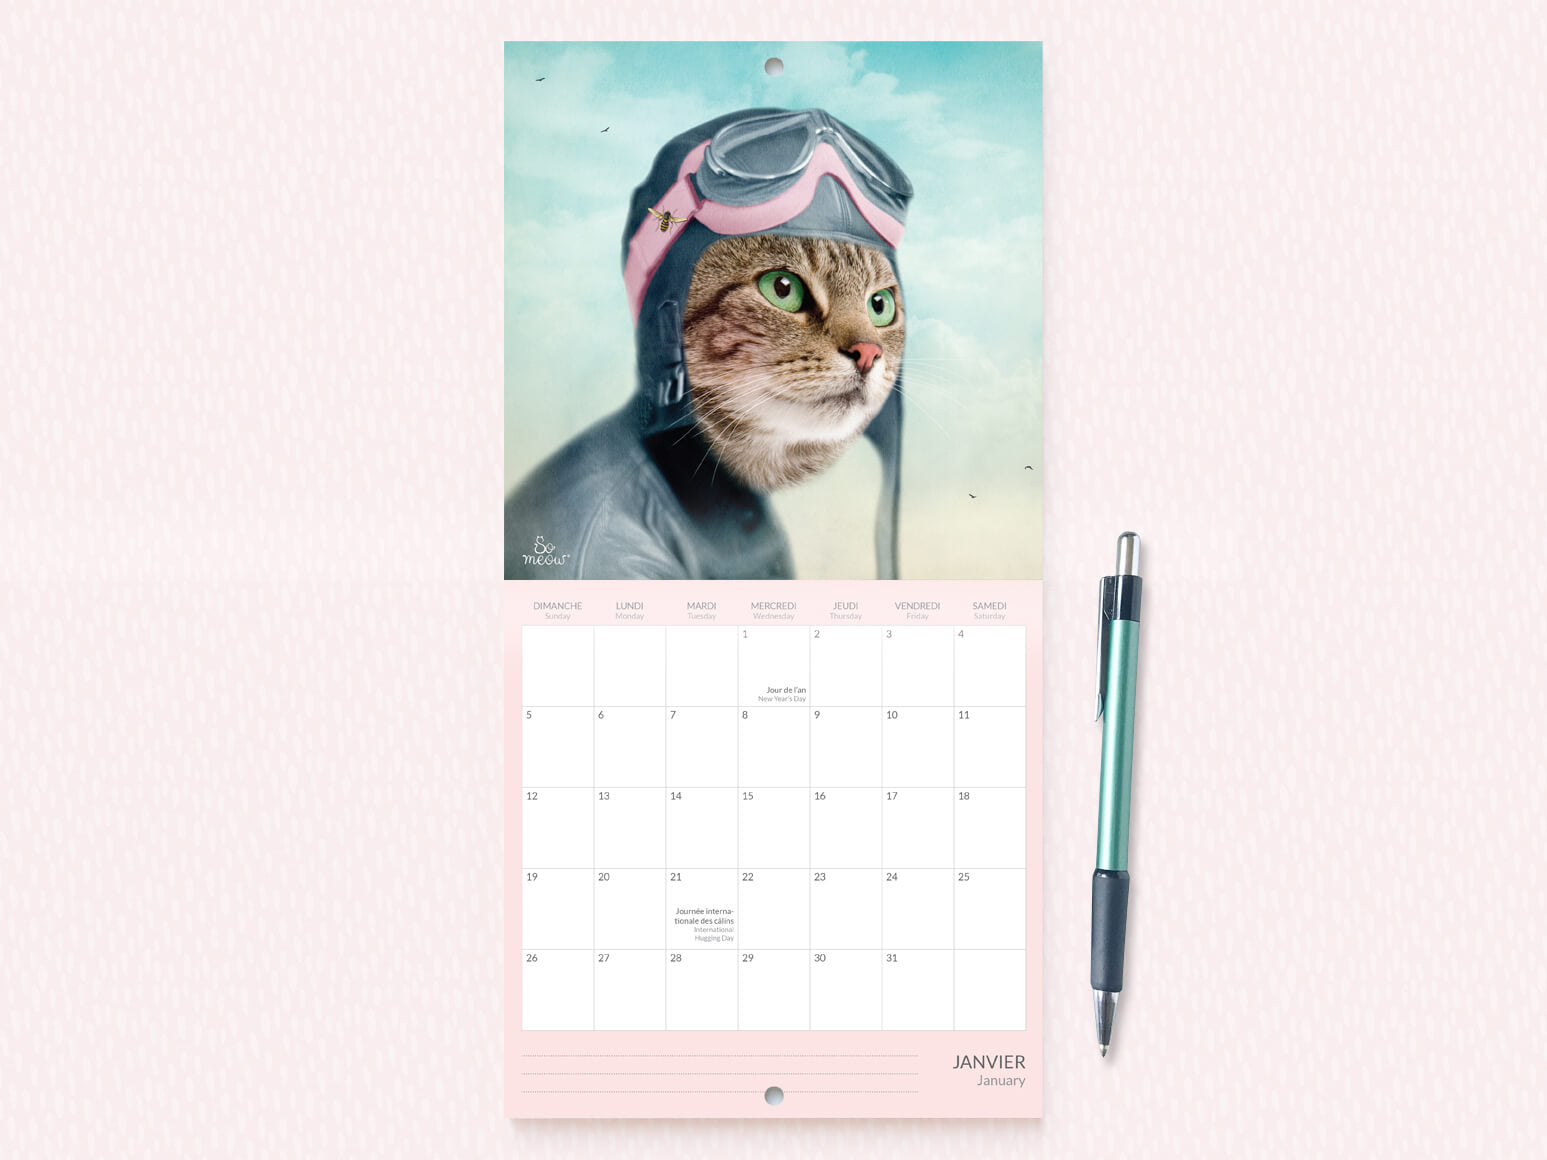 Calendrier de chats 2020 par So Meow